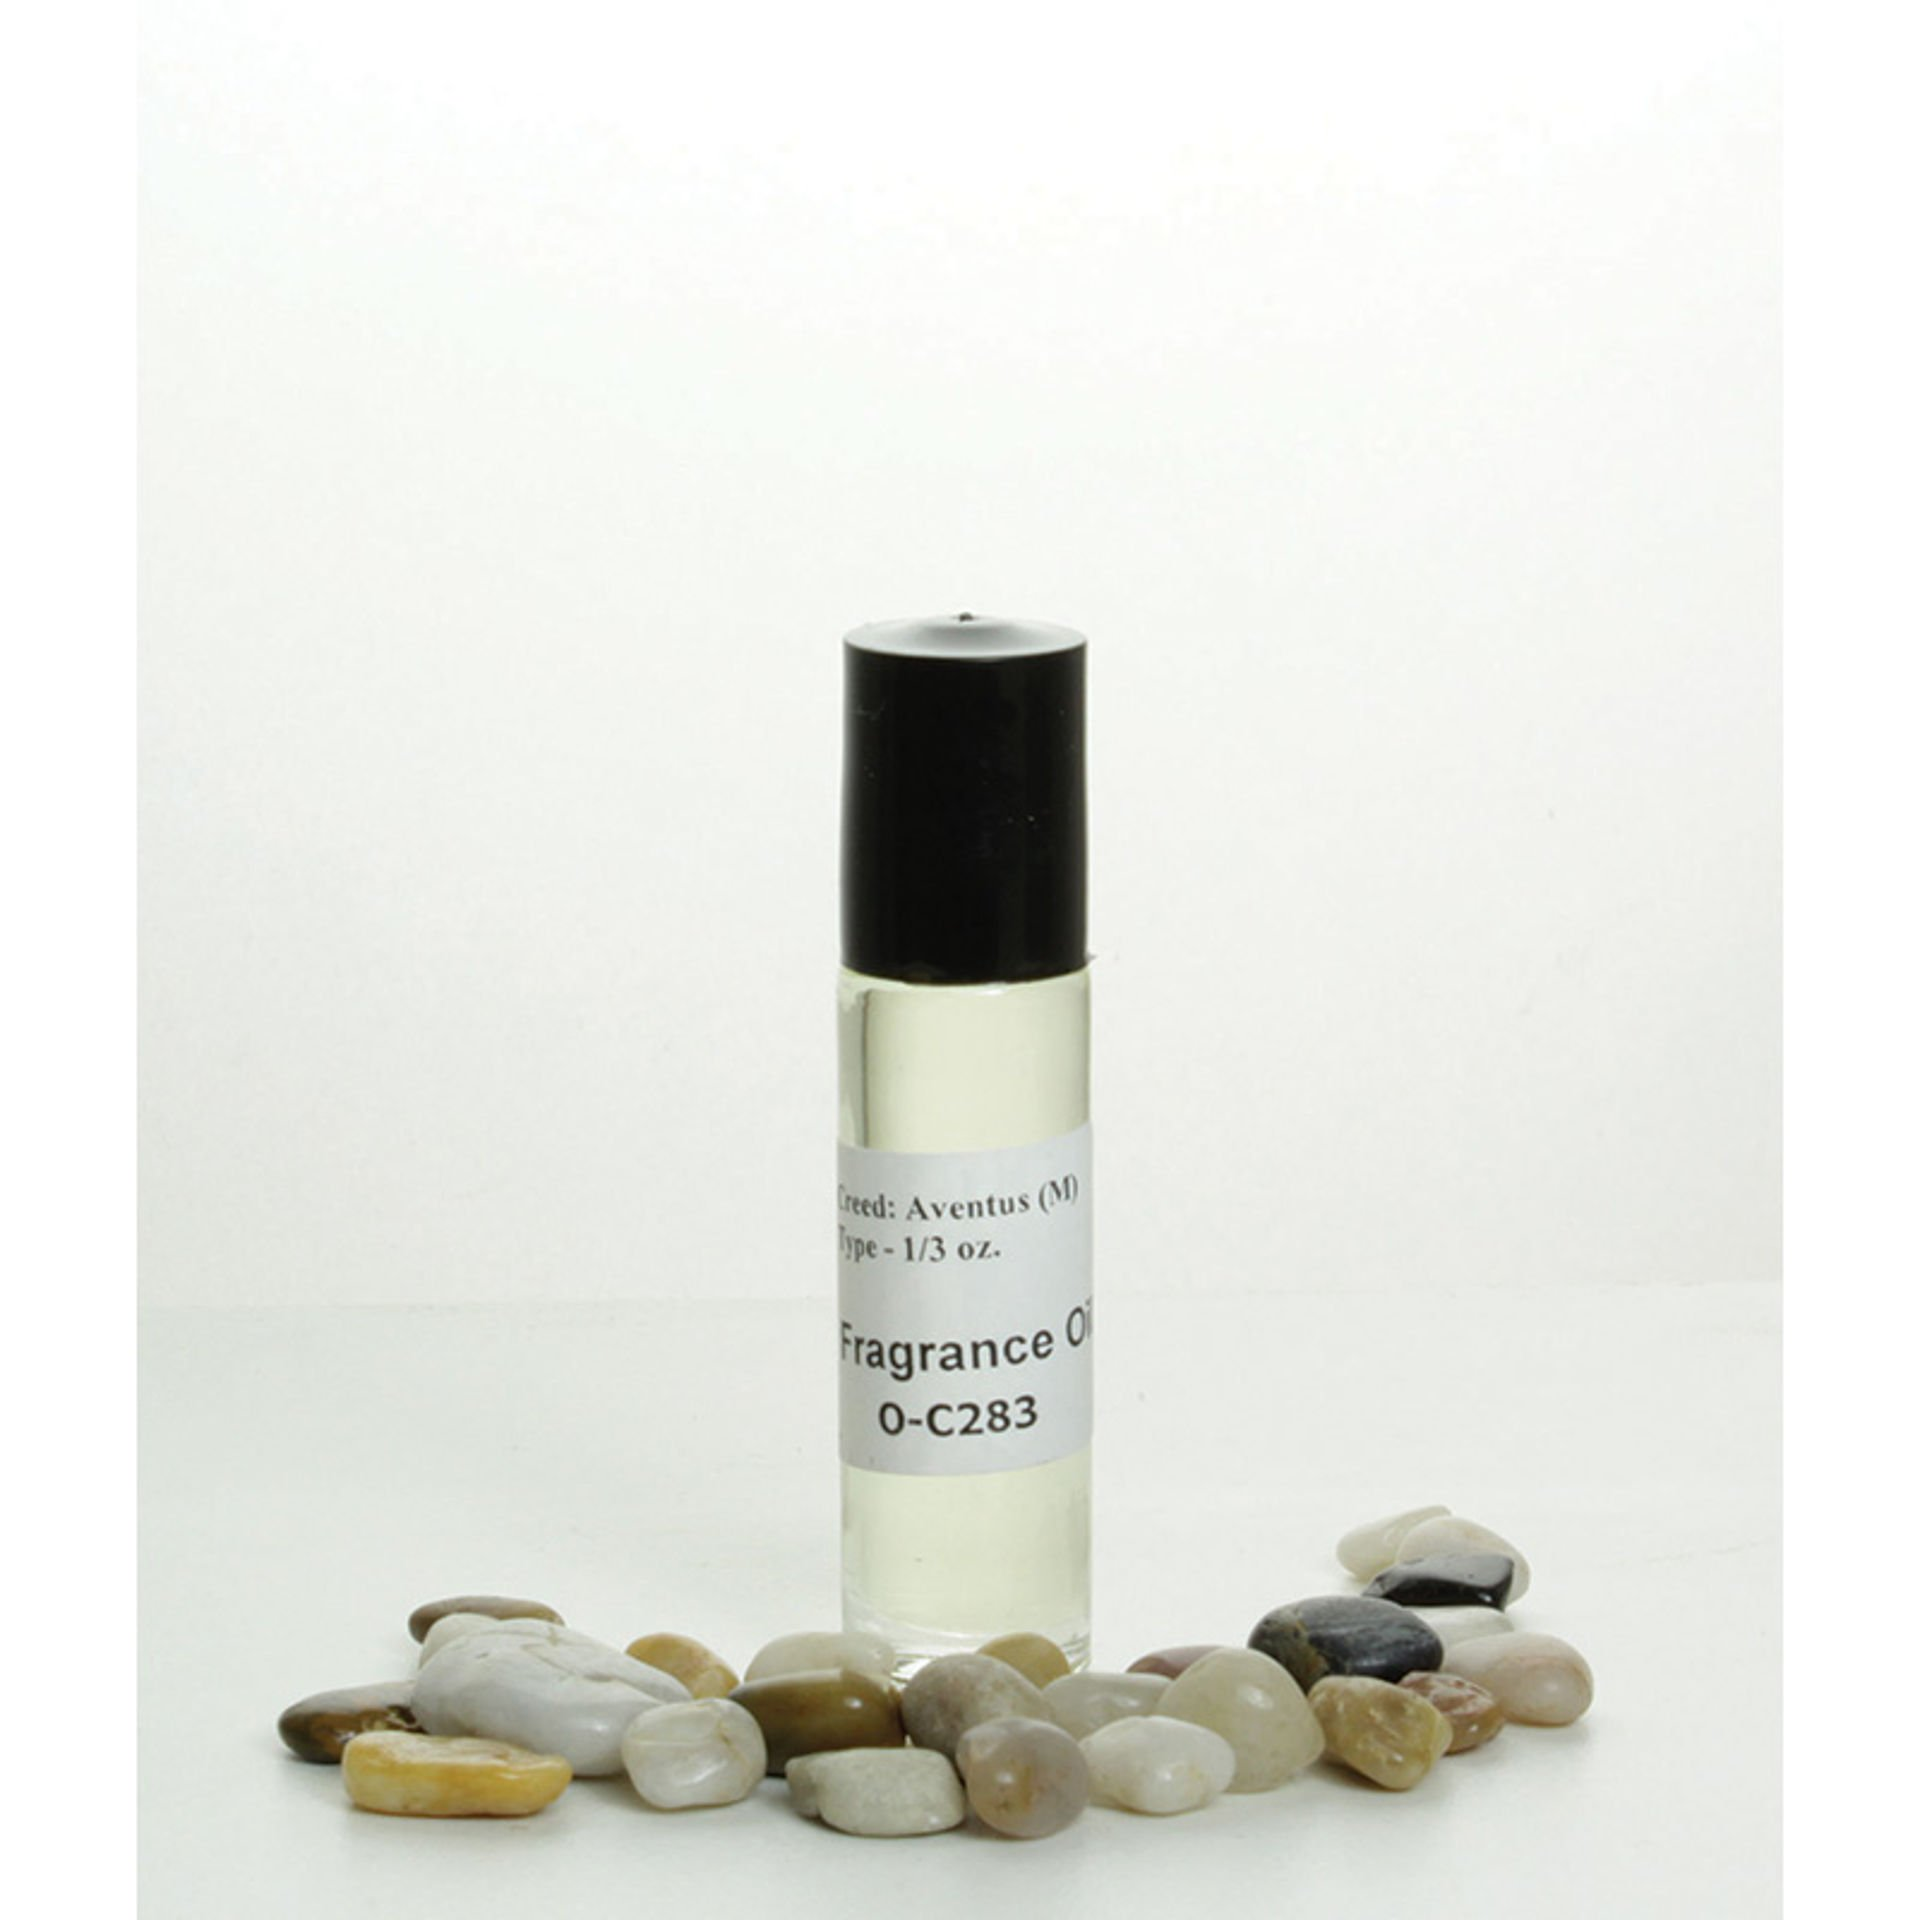 Picture of Creed: Aventus (M) Type - 1/3 oz.